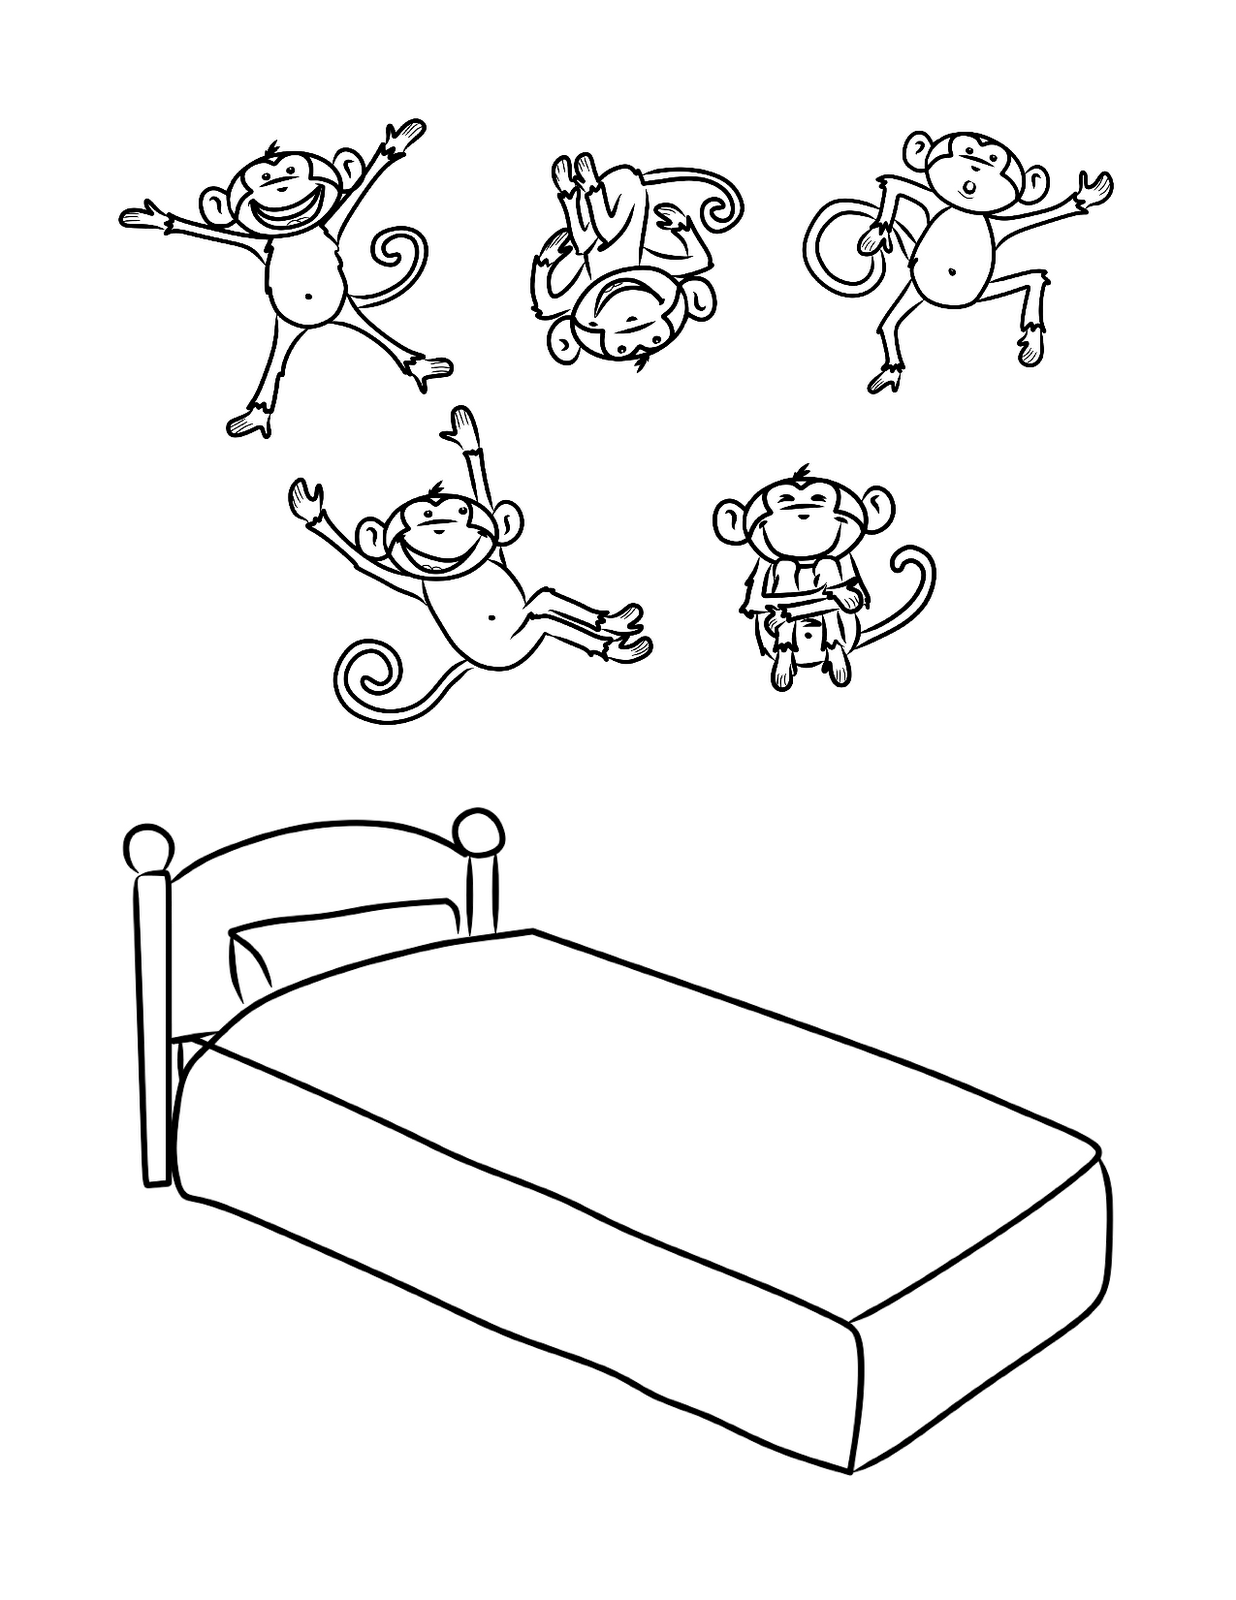 5 monkeys jumping on the bed coloring pages photo - 1